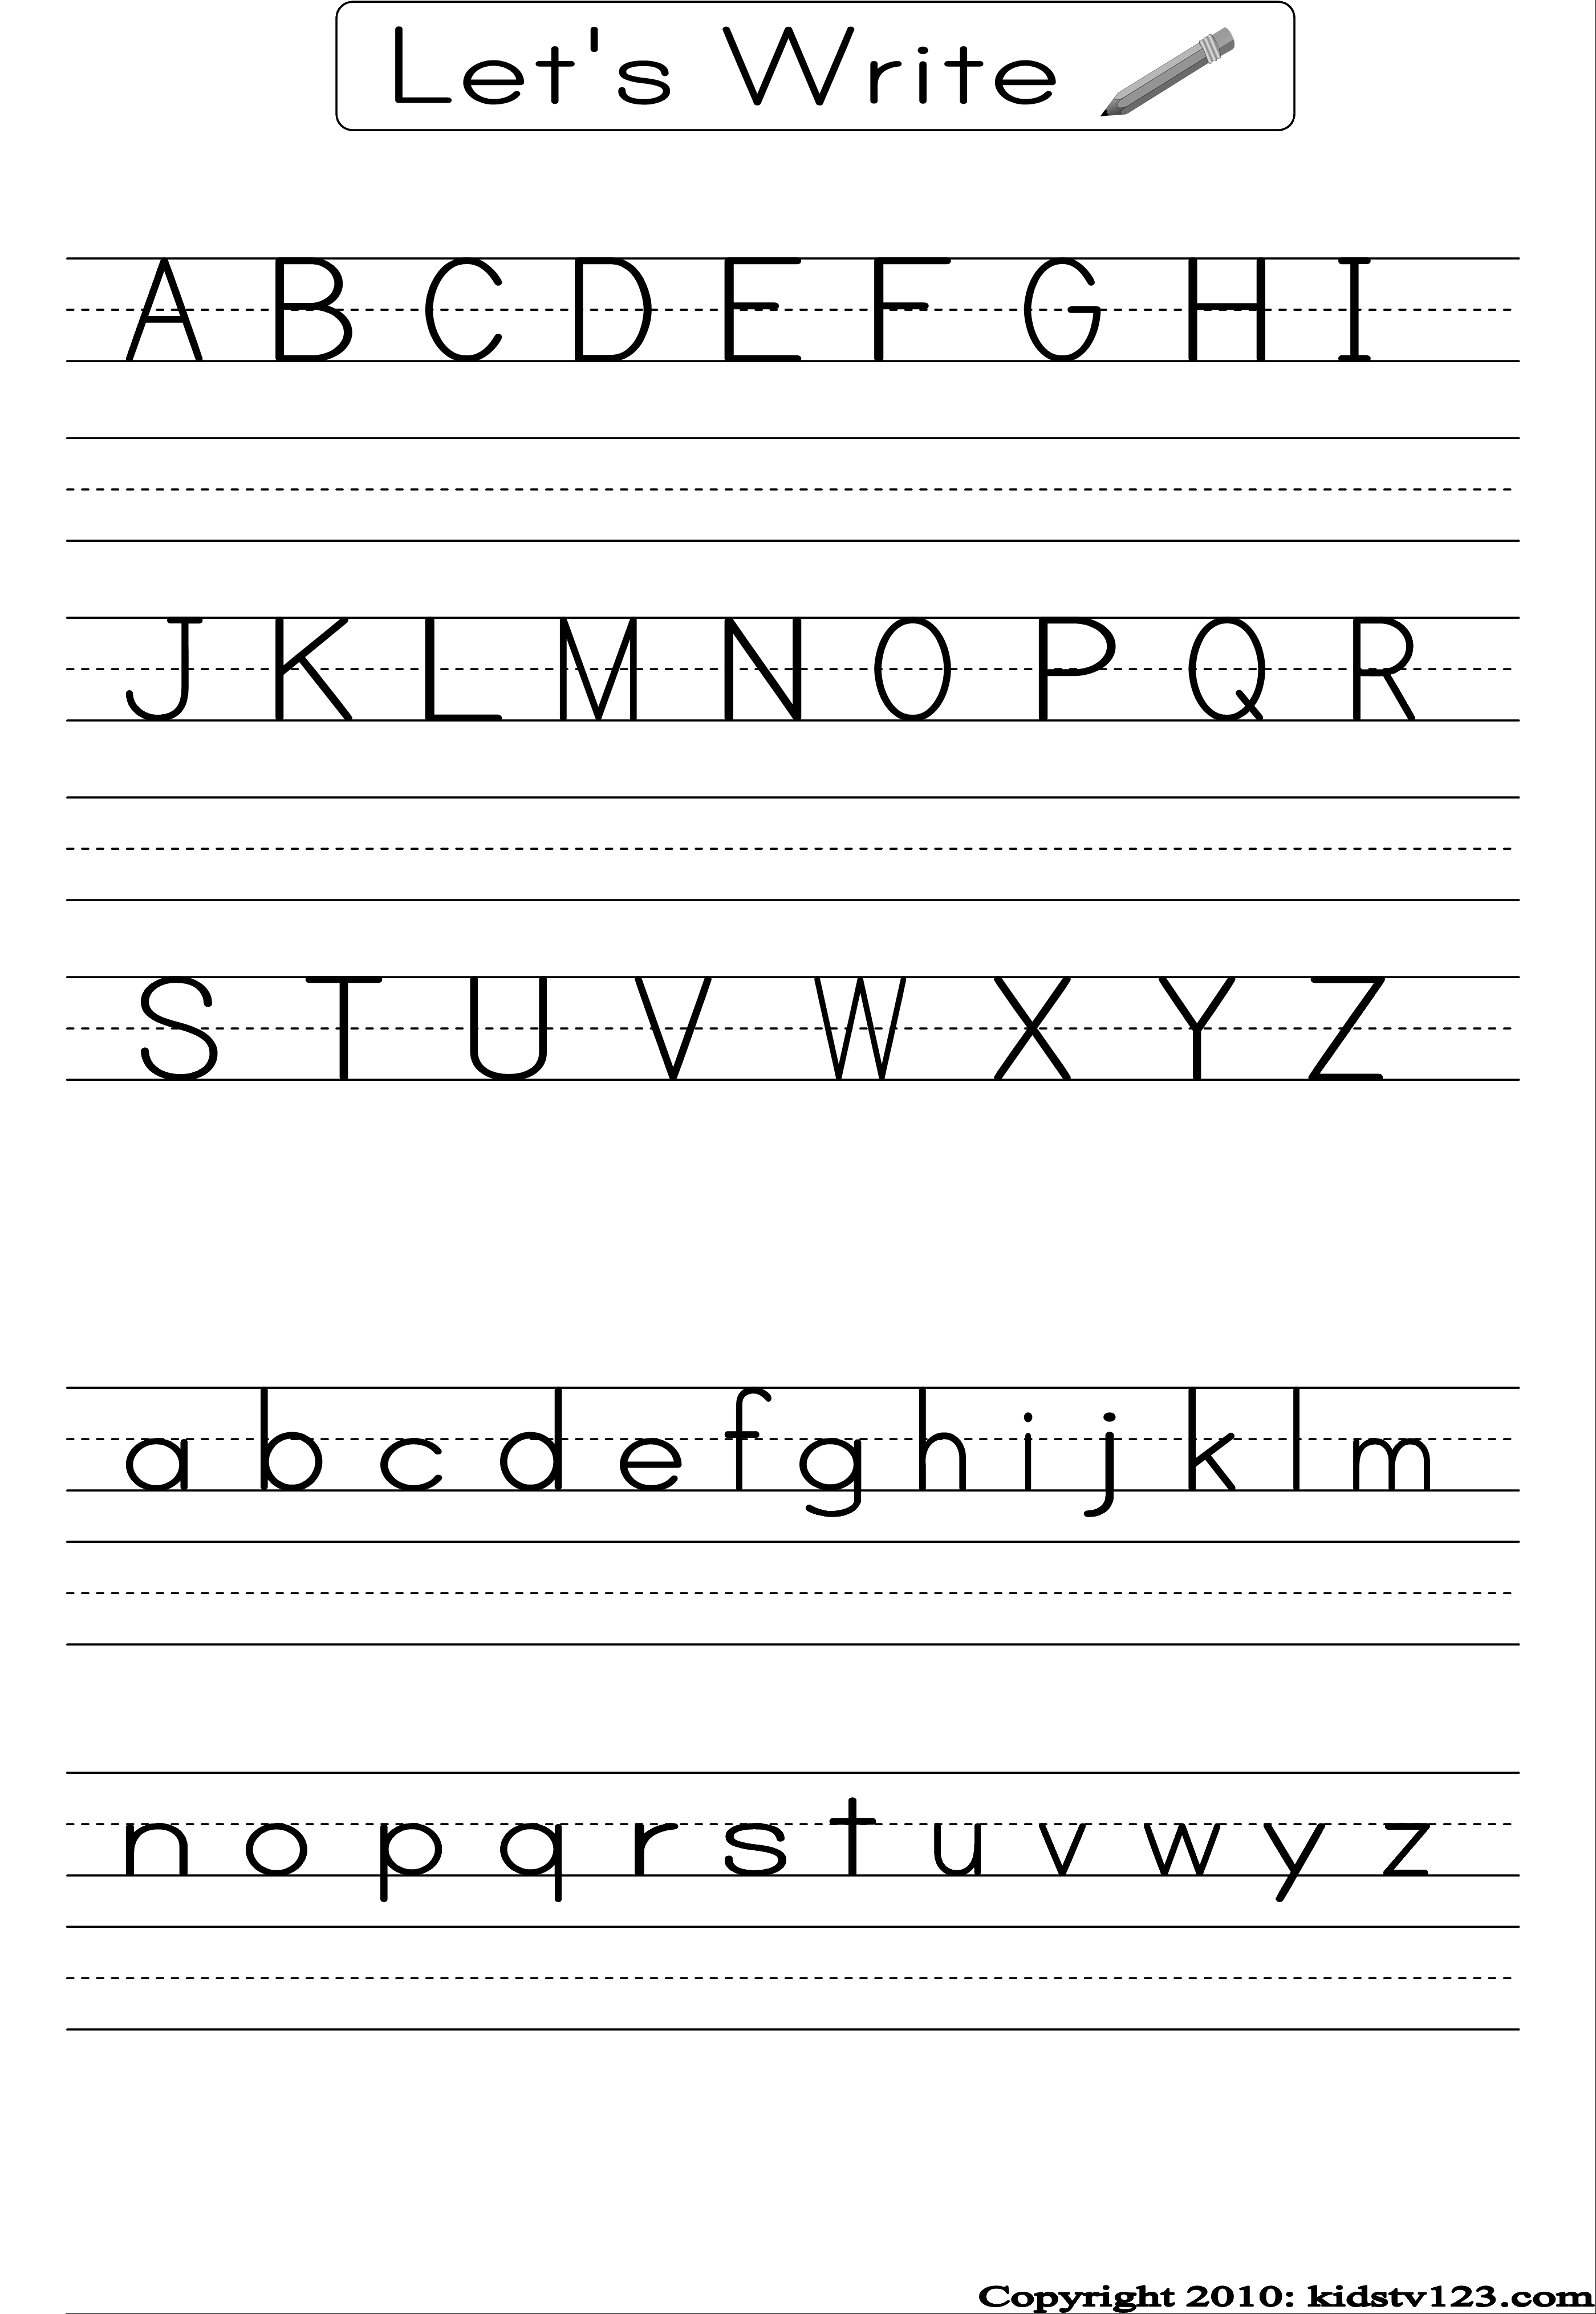 Alphabet Writing Practice Sheet | Edu-Fun | Alphabet Worksheets | Printable Alphabet Worksheets